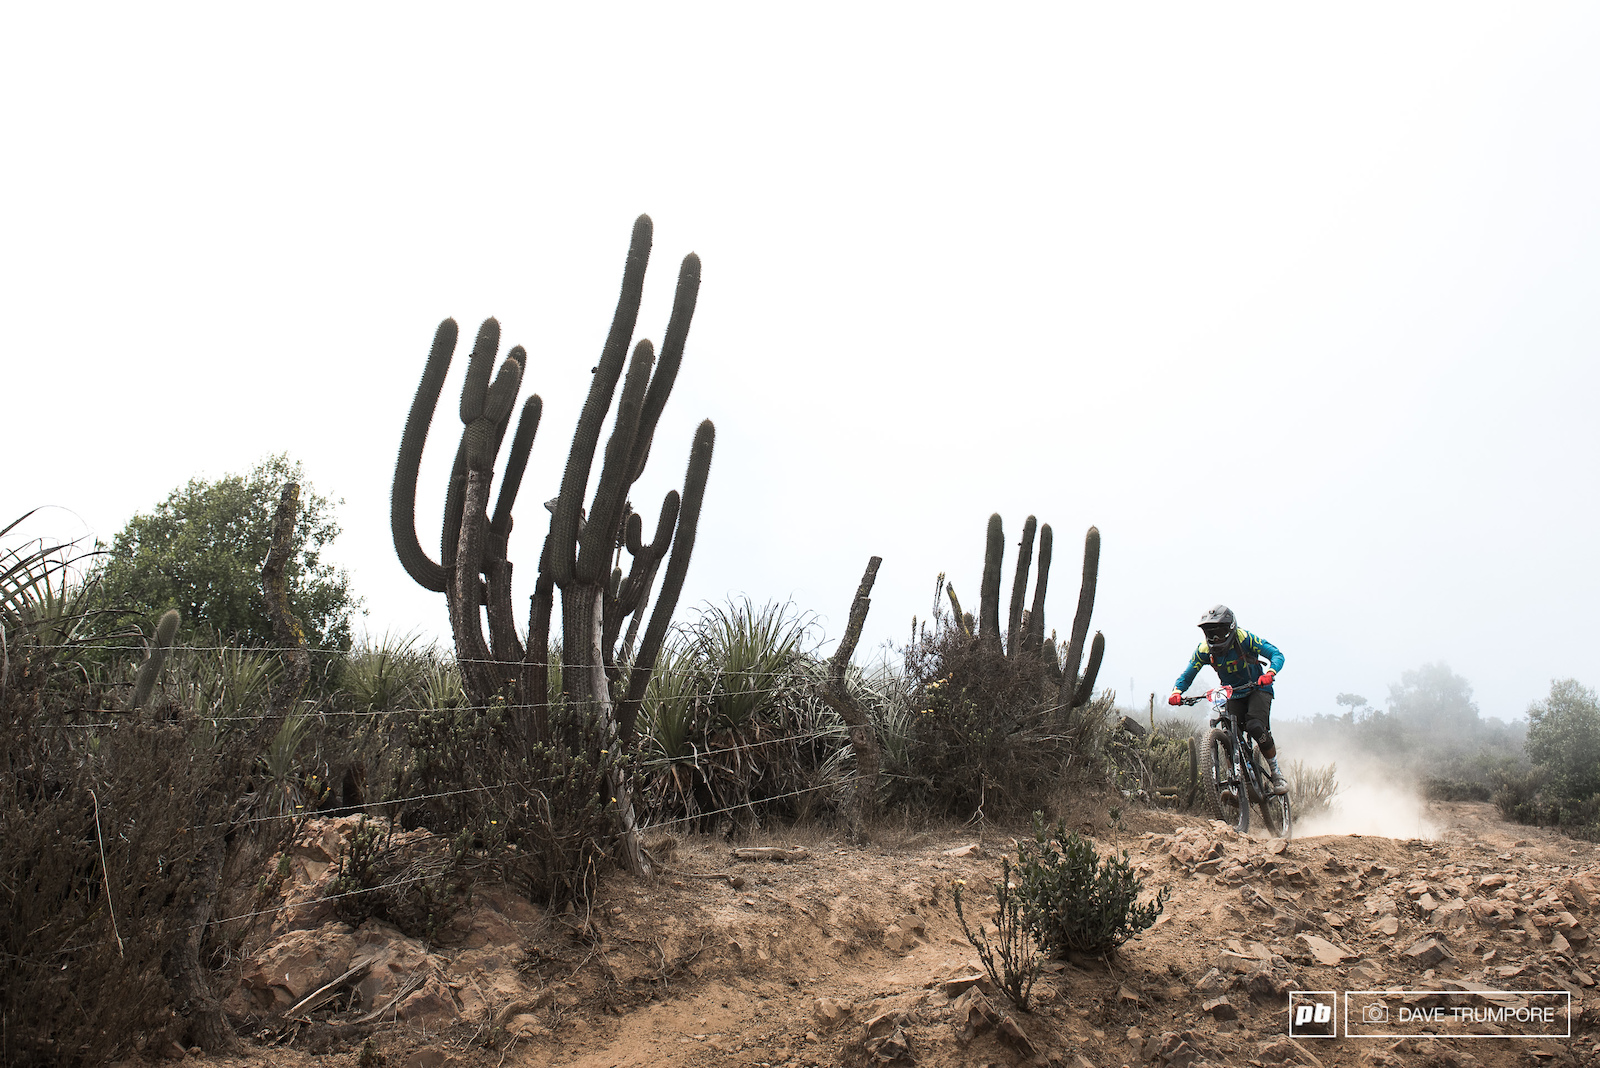 Pablo Maldonado does battle with fog capture barbed wire and sharp loose rocks on Stage 14 en route to 8th overall.